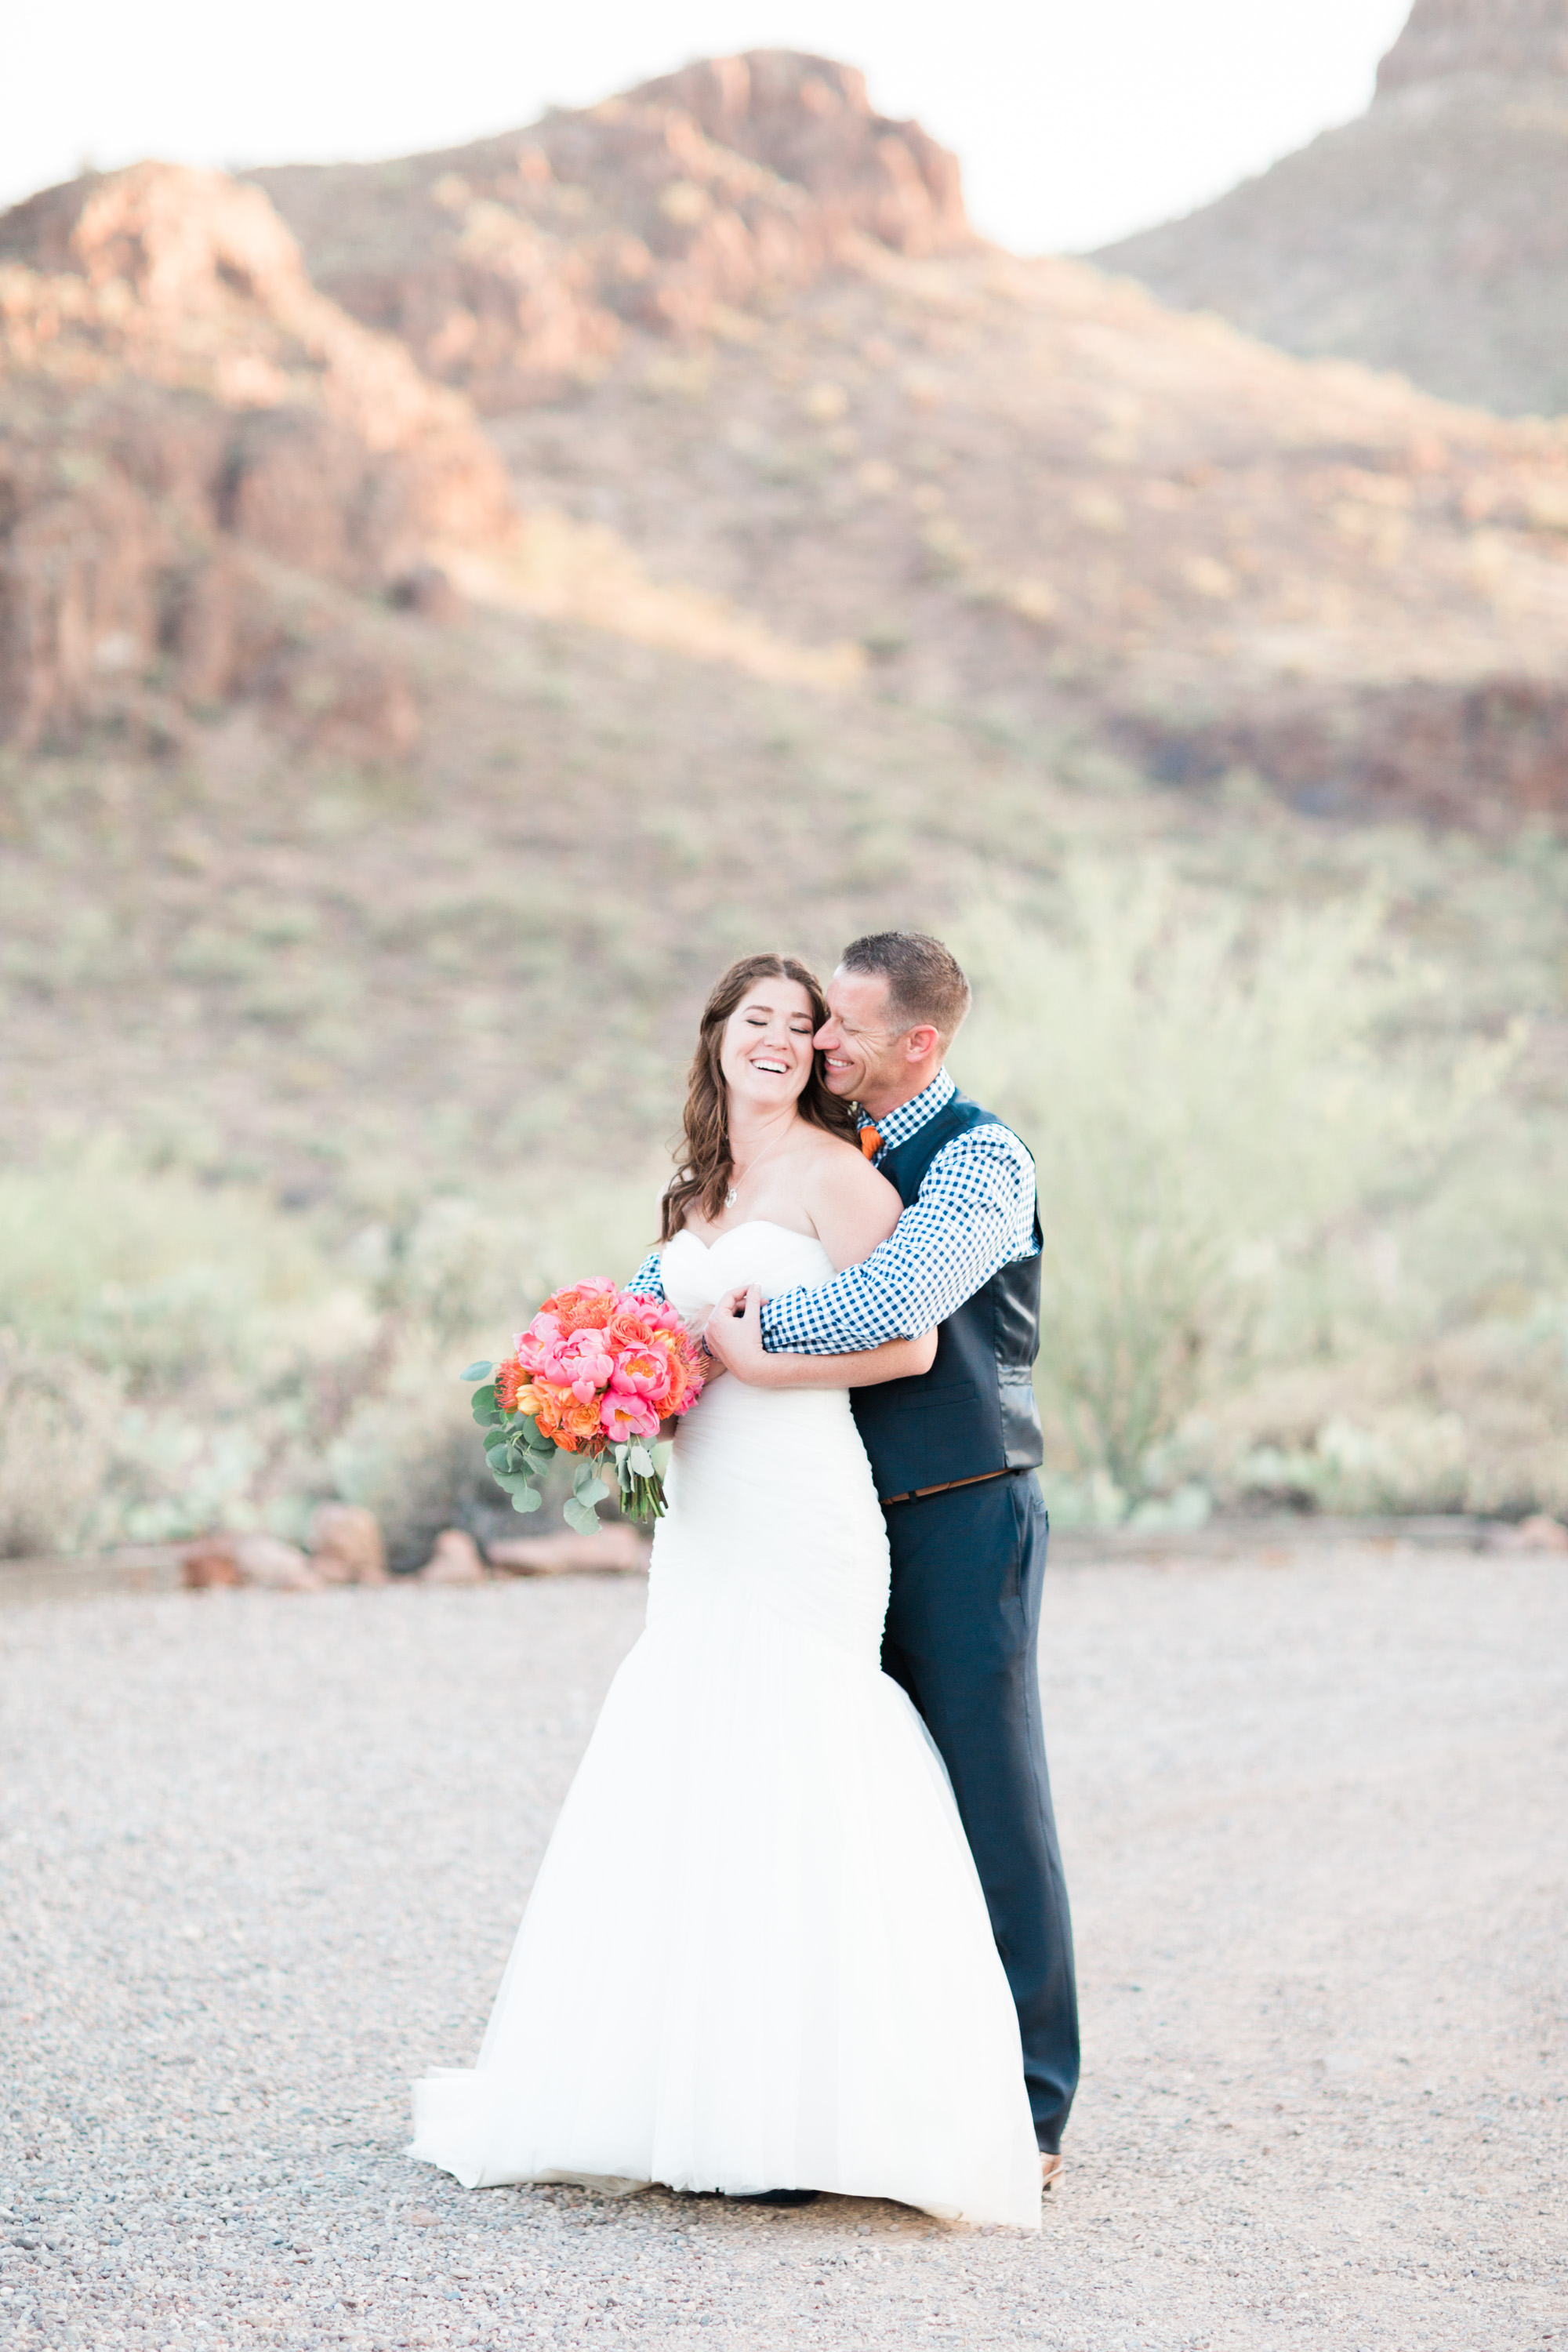 Bride and groom photos in front of the gorgeous mountain backdrops at Stardance wedding venue in Tucson. What a perfect spot for a Tucson wedding!